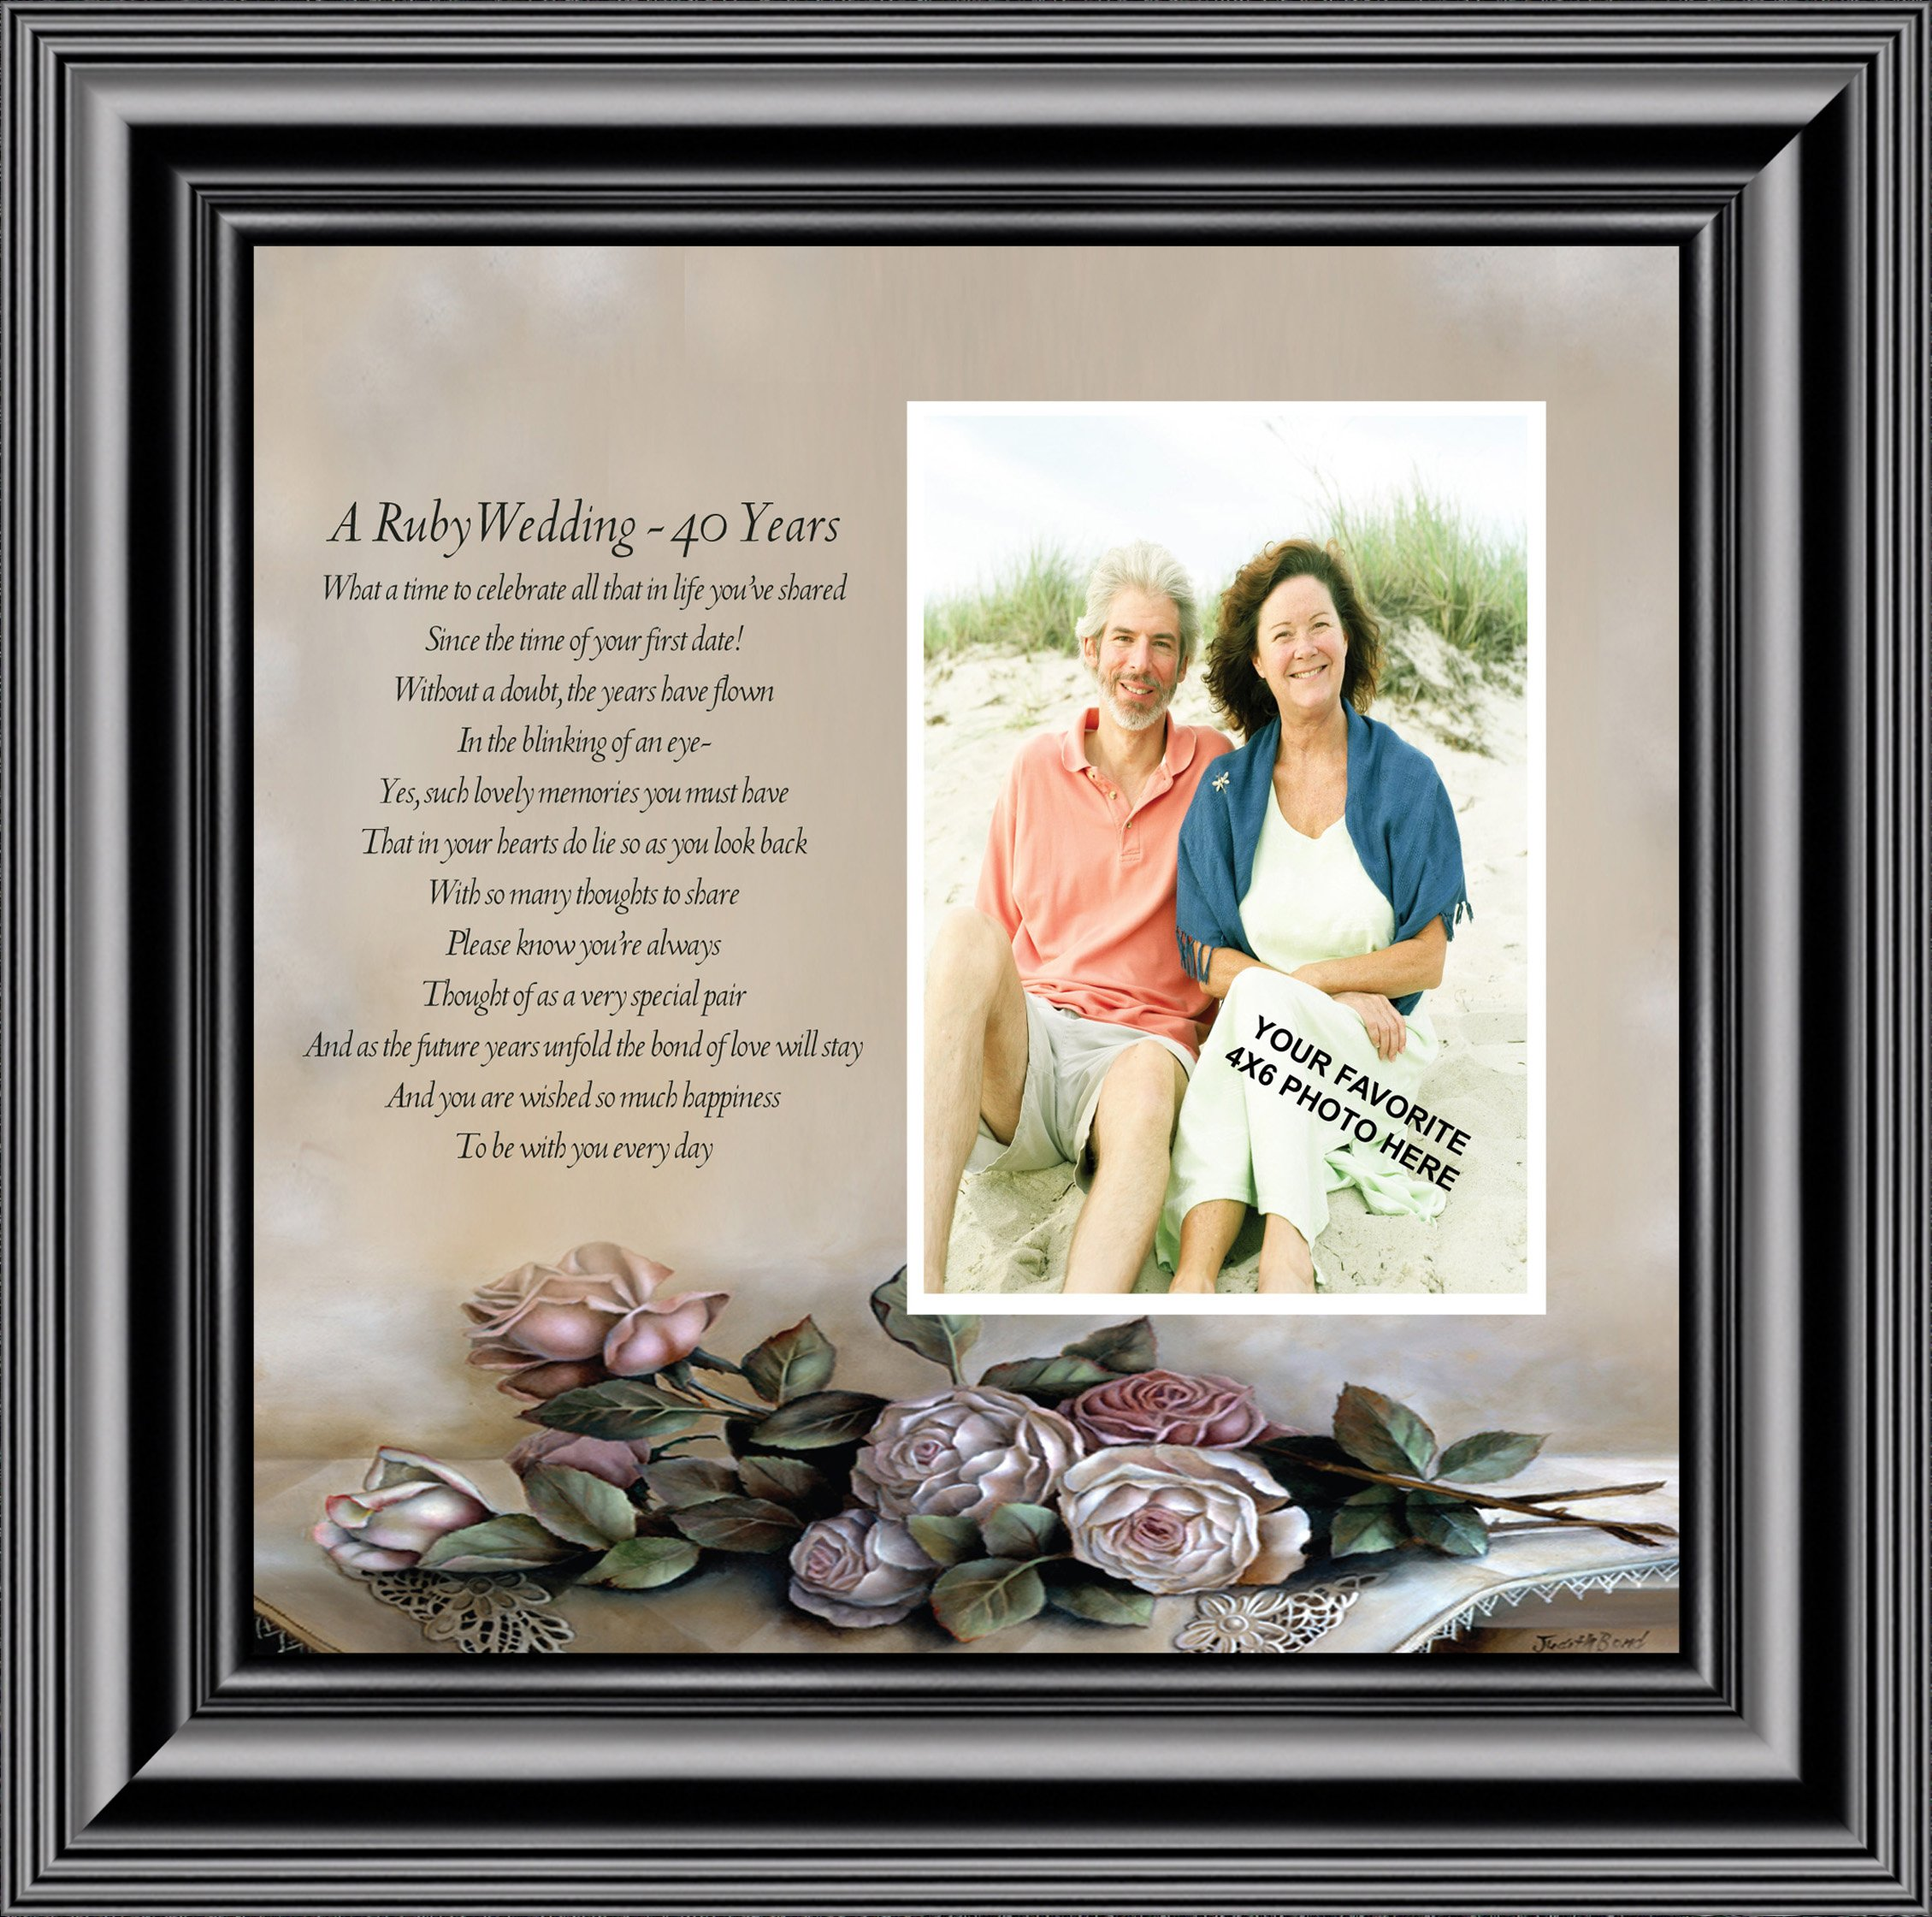 Ruby Anniversary, Personalized Picture Frame for 40th Wedding Anniversary, 10x10 6776 - Walmart.com